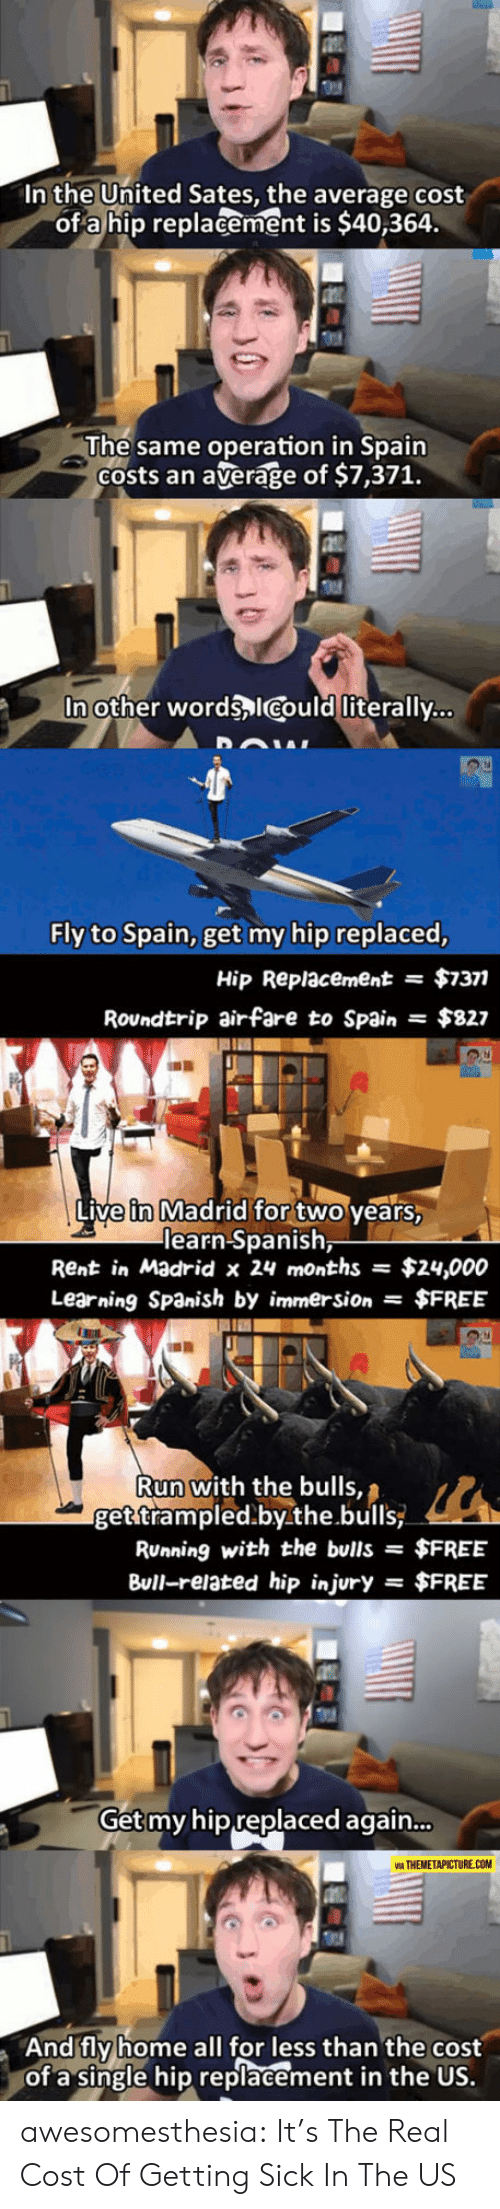 Run, Spanish, and Tumblr: In the United Sates, the average cost  of a hip replacement is $40,364.  The same operation in Spain  Costs an  average of $7,371.  In other words ICould literally...  Fly to Spain, get my hip replaced,  $7377  Hip Replacement  =  Roundtrip airfare to Spain  $827  Live in Madrid for two years,  learn Spanish,  Rent in Madrid x 24 months  $24,000  Learning Spanish by immersion $FREE  Run with the bulls,  get trampled.by.the.bulls  RUnning with the bulls =  $FREE  Bull-related hip injury  $FREE  =  Get my hip replaced again...  VIA THEMETAPICTURE.COM  And fly home all for less than the cost  of a single hip replacement in the US. awesomesthesia:  It's The Real Cost Of Getting Sick In The US